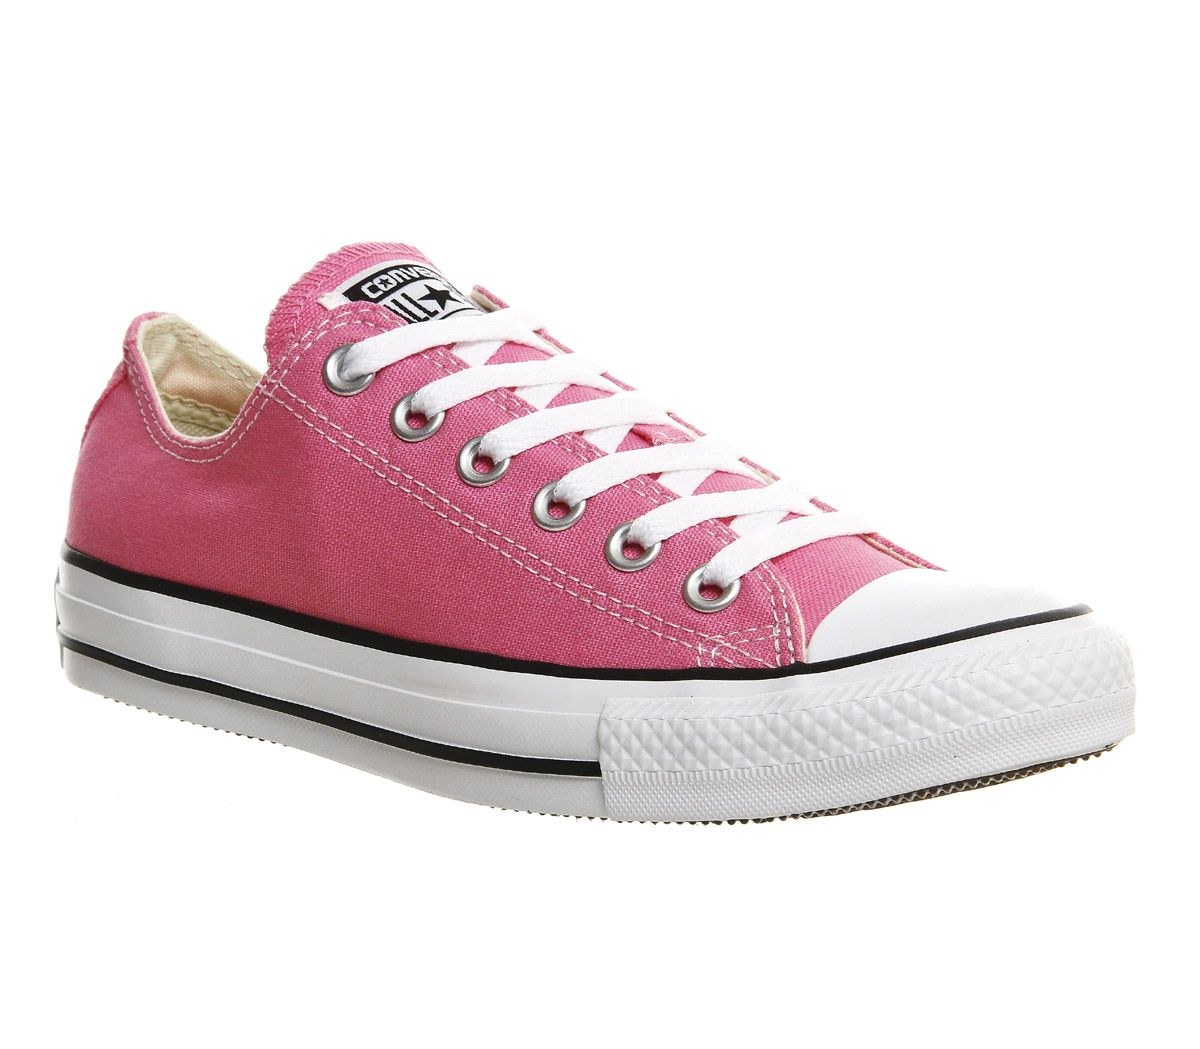 2bd5213705f8 Sentinel Womens Converse All Star Low Pink Canvas Trainers Shoes